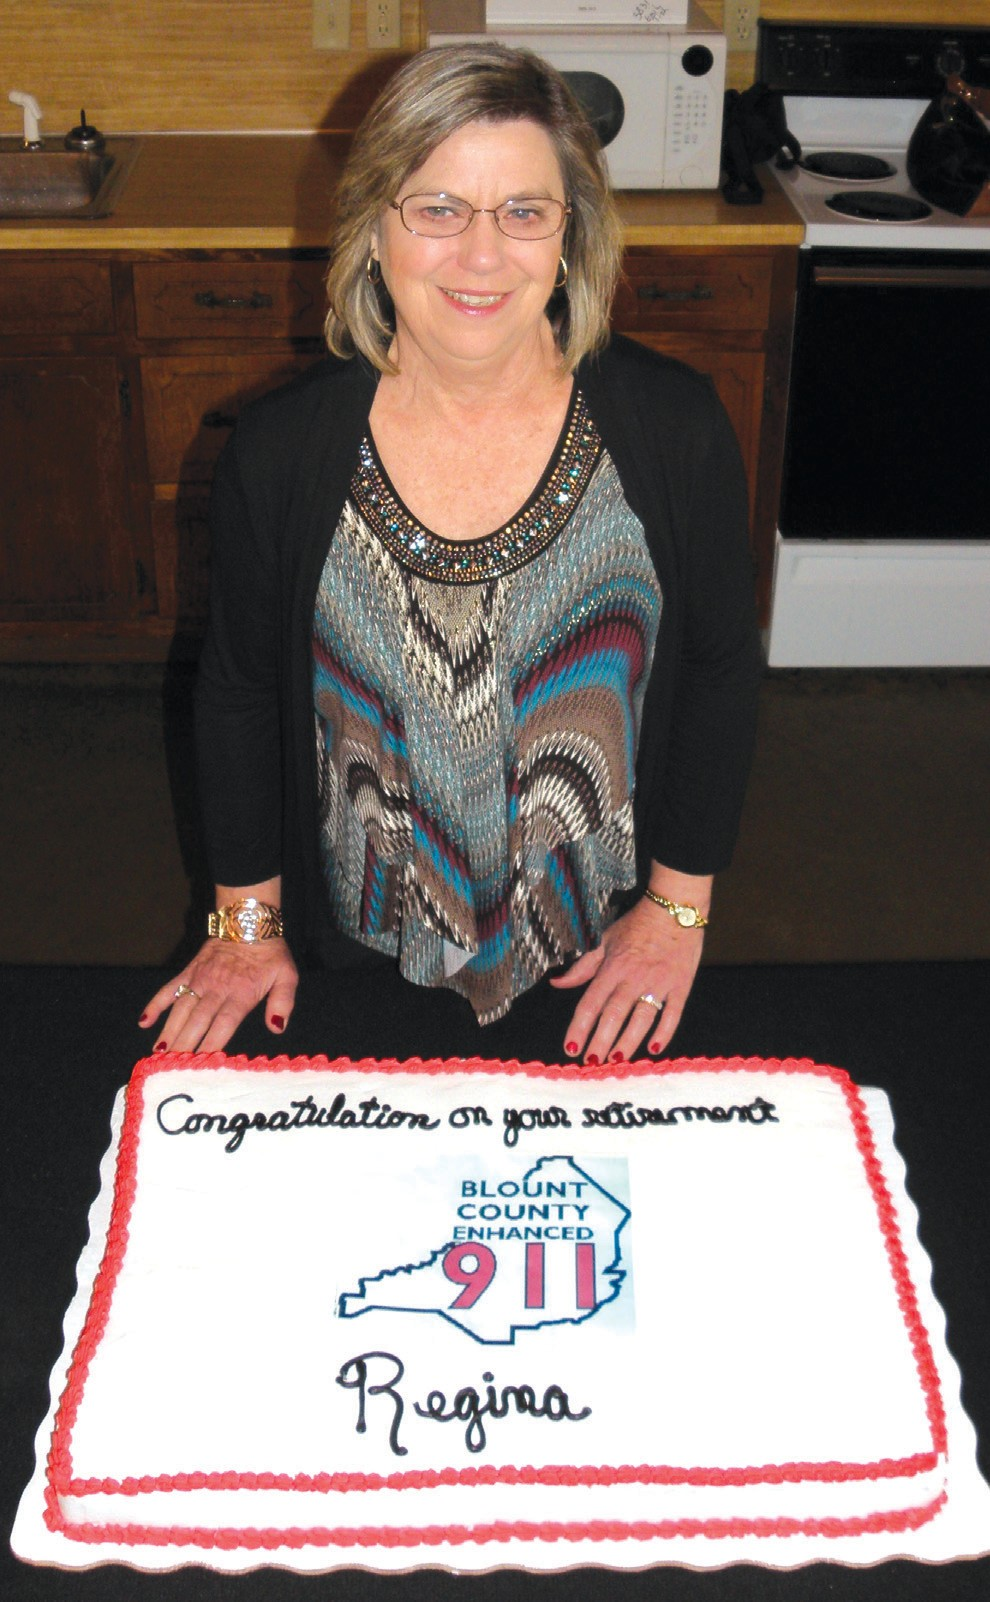 """Last month, Regina Wilson retired after working in public safety communications for Blount County for 34 years. Wilson begin her career in 1979 dispatching for the Sheriff's Department under Sheriff J.C. Carr. In 1993, she became the first communications supervisor for the newly-formed Blount County 911. Only a month after transition into the position, she supervised the activation of the first consolidated calltaking and dispatch system in the county during the blizzard of March 1993. Throughout her years with 911, she oversaw numerous procedural and technological improvements to the center, and in July 2000, she became the assistant administrator. """"Blount County 911 has always been recognized as one of the premier 911 calling systems in the state due mainly to Regina's dedication to taking care of the responders and residents of the county. She will be greatly missed,"""" said Blount County Emergency Management Agency director Max Armstrong. – Nicole Singleton"""